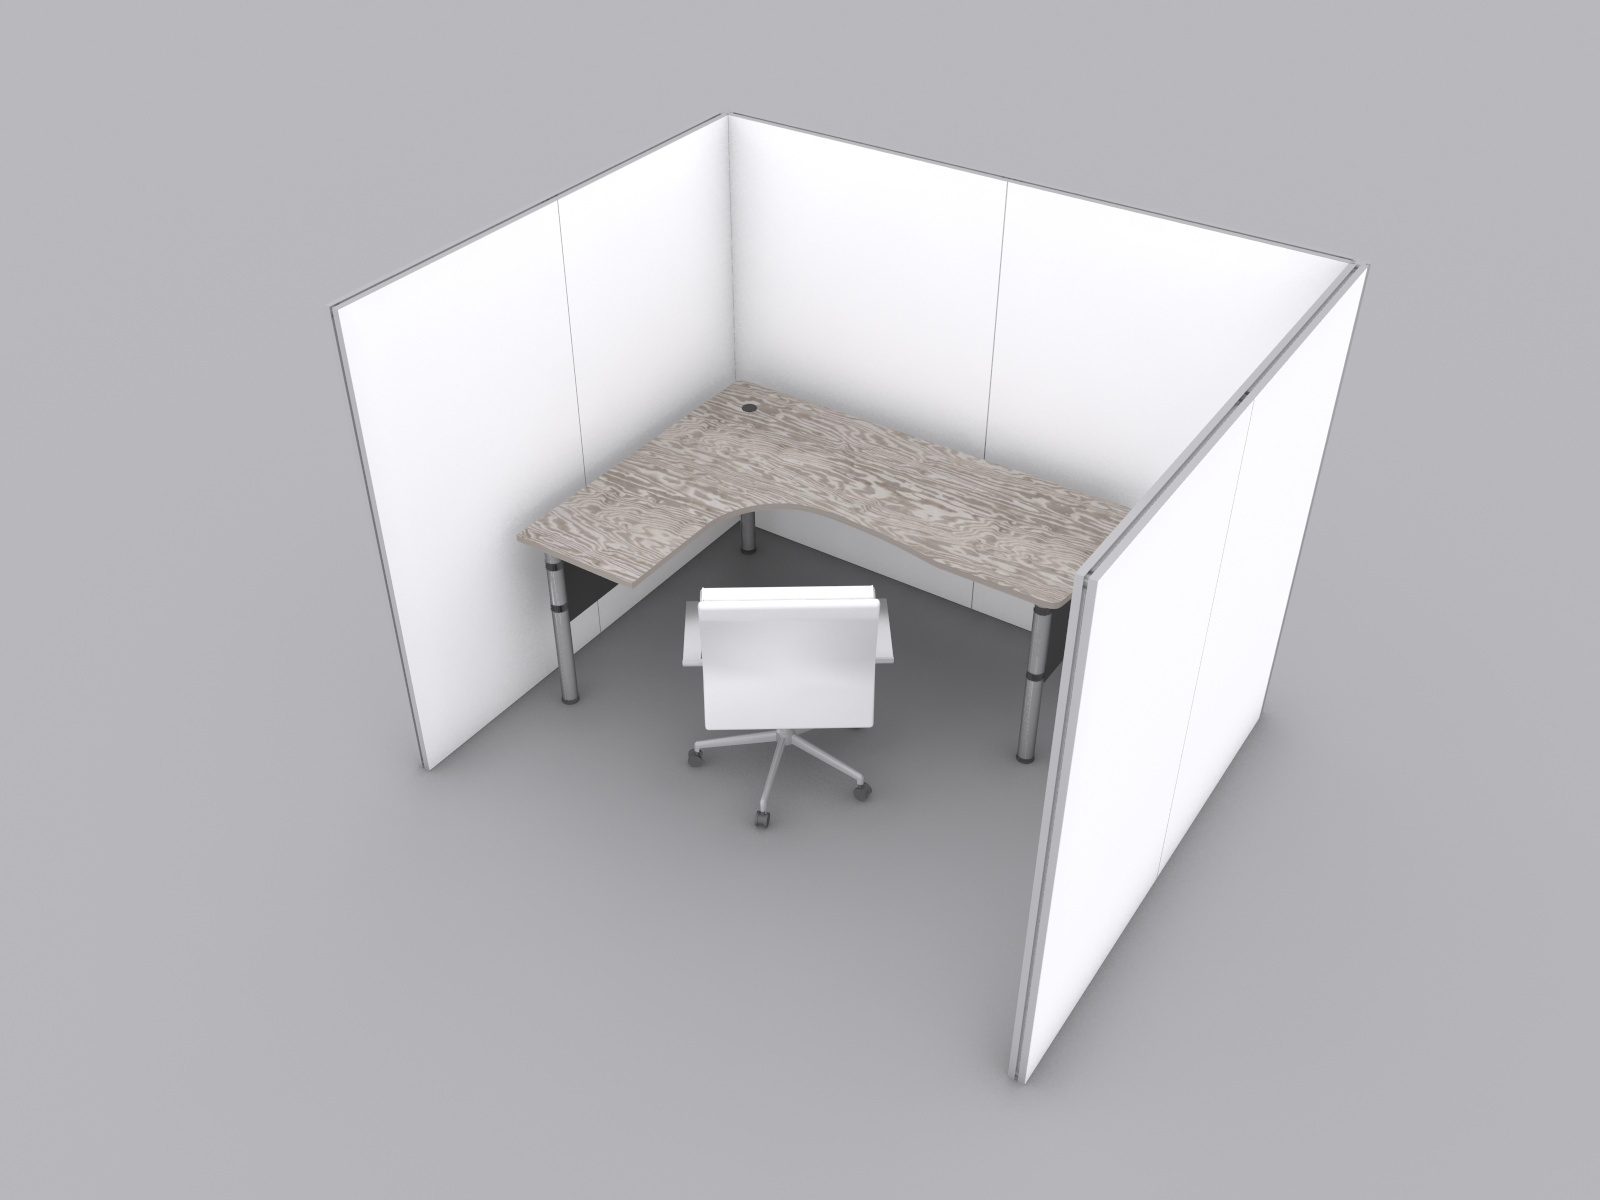 050520-Office-Pod-Single-38-and-46x72-View-20000